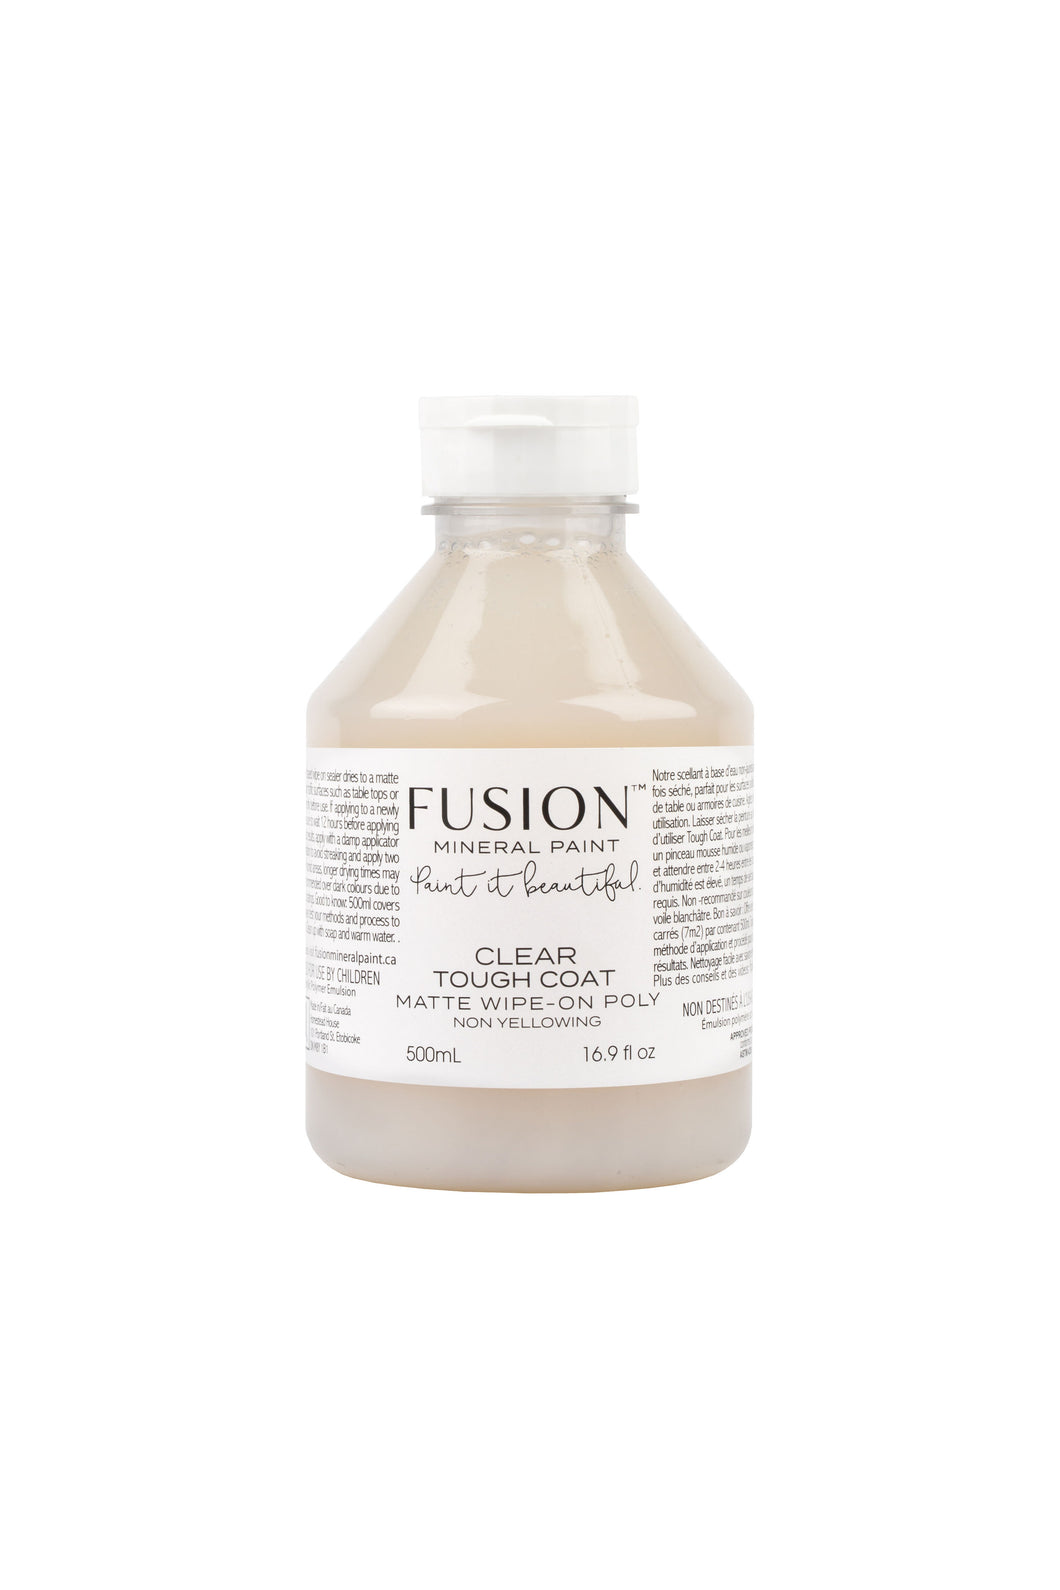 Fusion Mineral Paint Tough Coat matte top coat